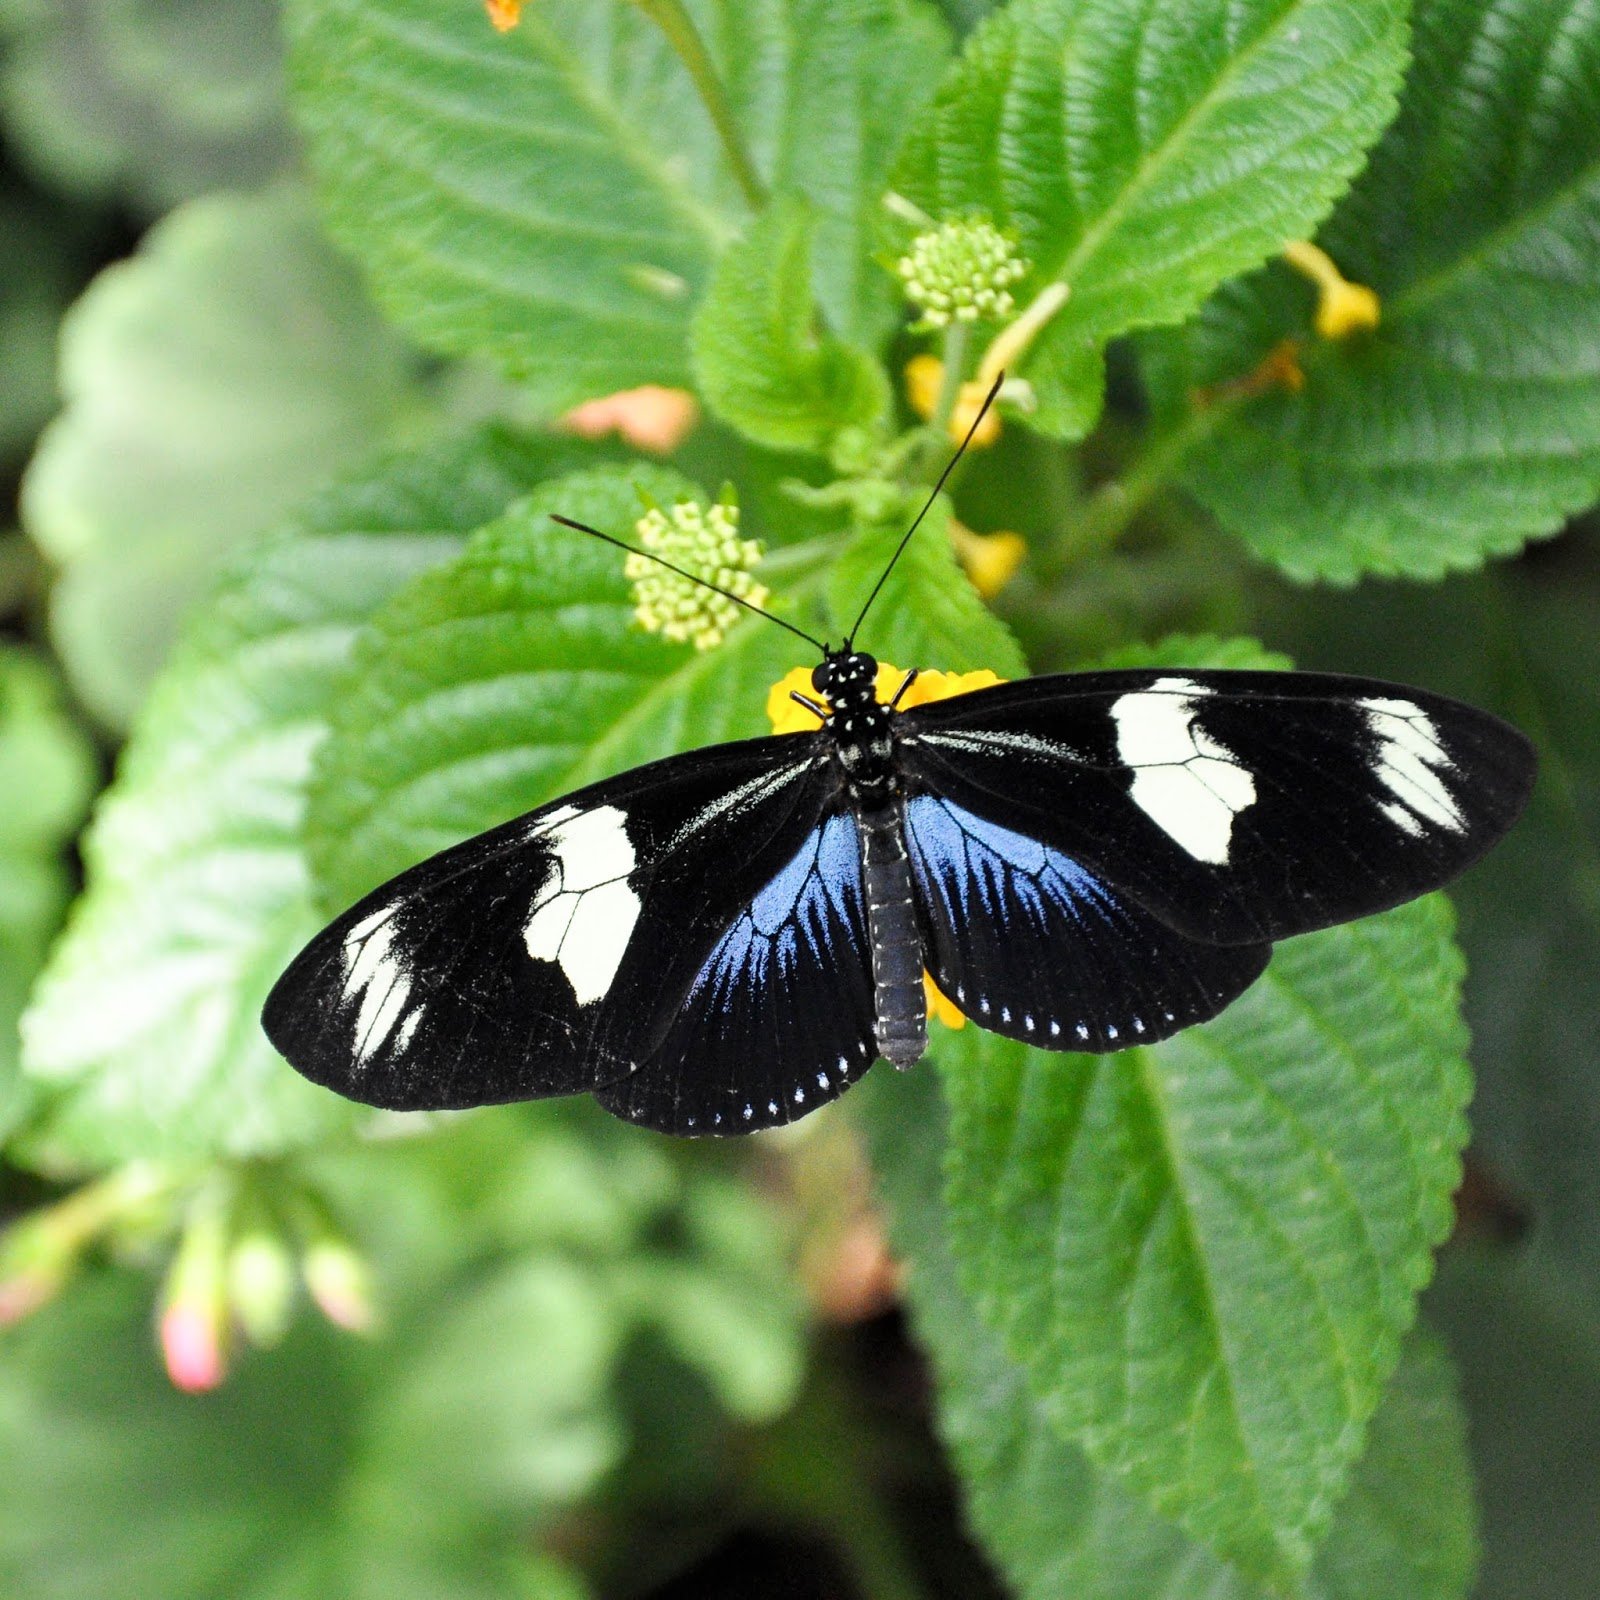 A black, white and blue butterfly, Tropical Butterfly House, The Butterfly World Project, St. Albans, Herts, UK